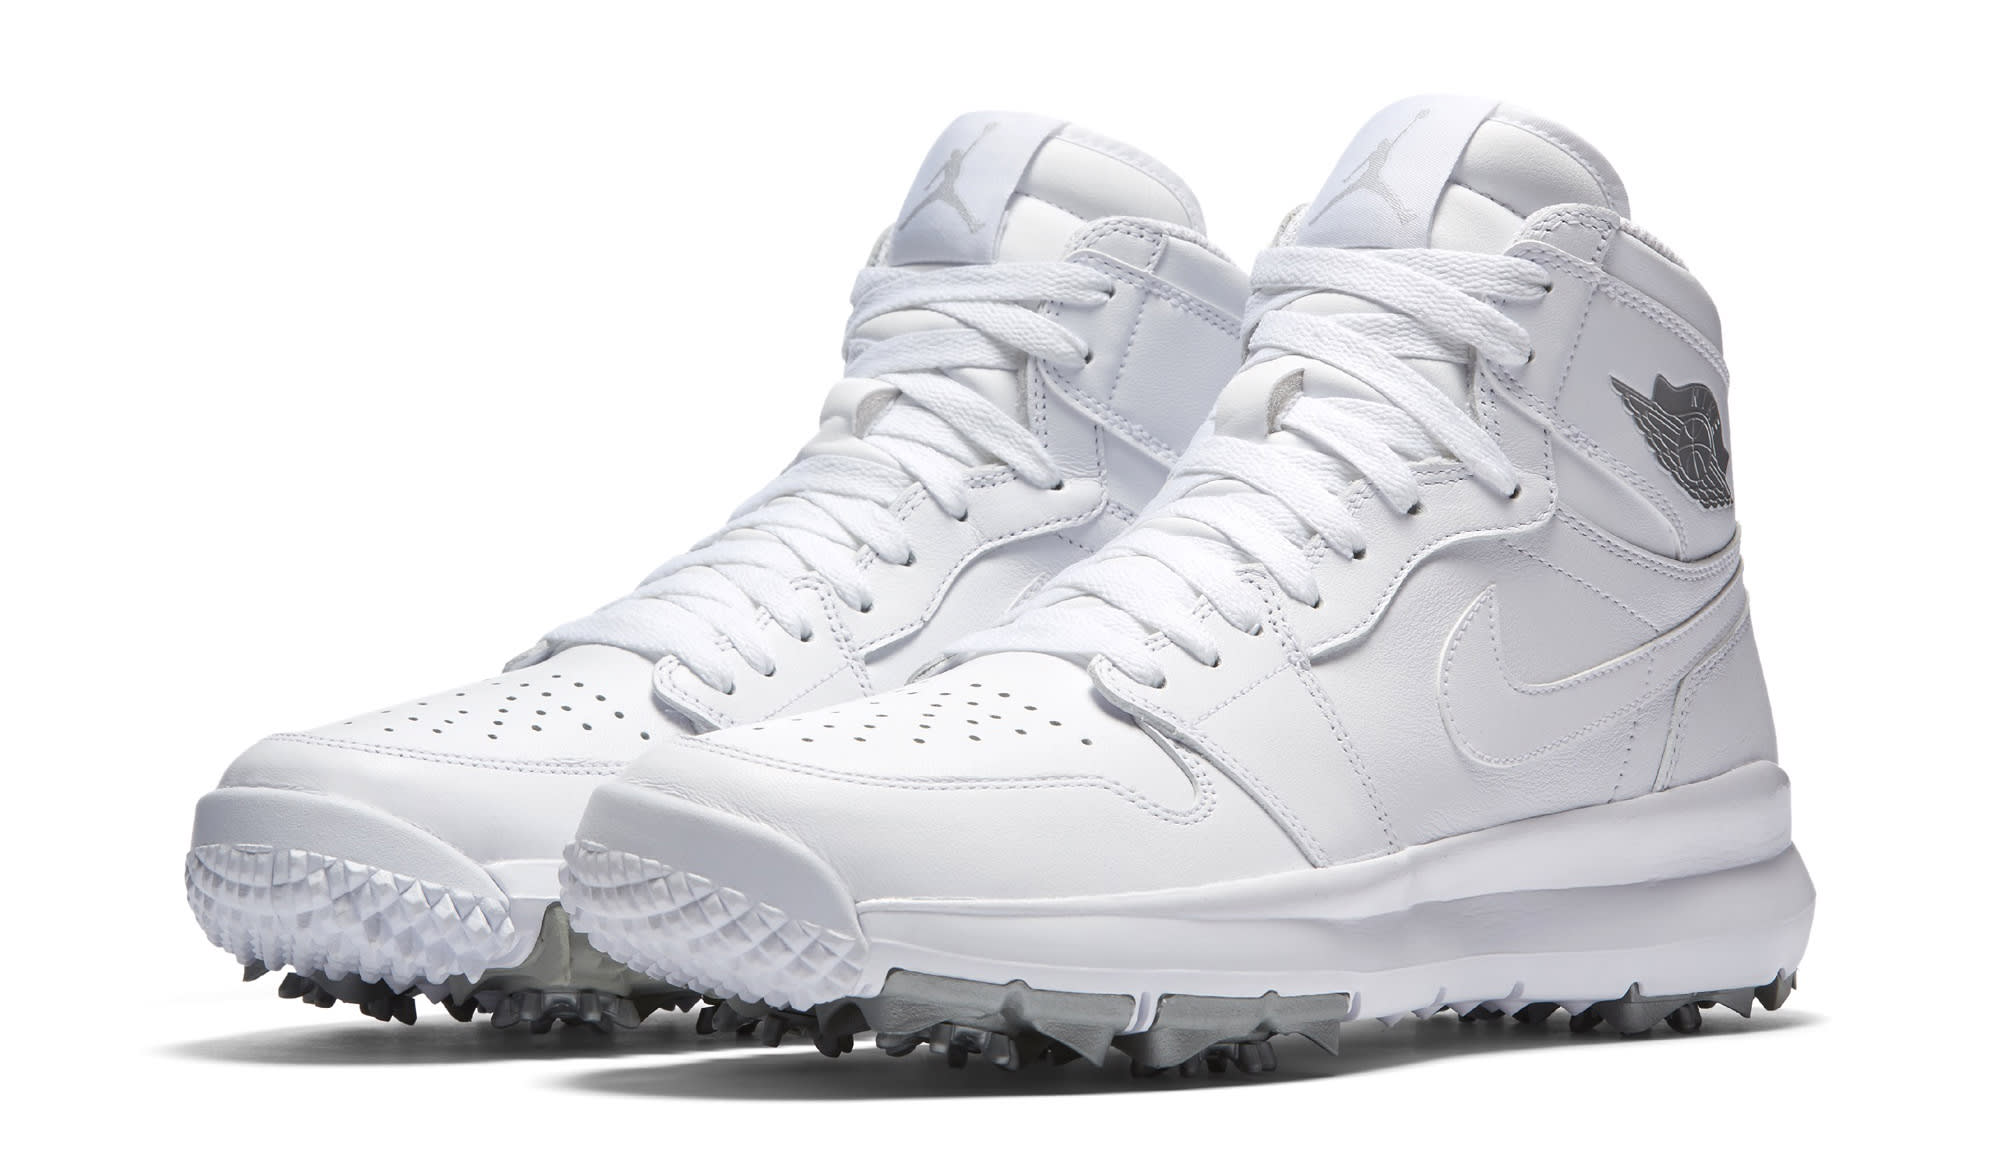 Air Jordan 1 Golf Shoes | Sole Collector